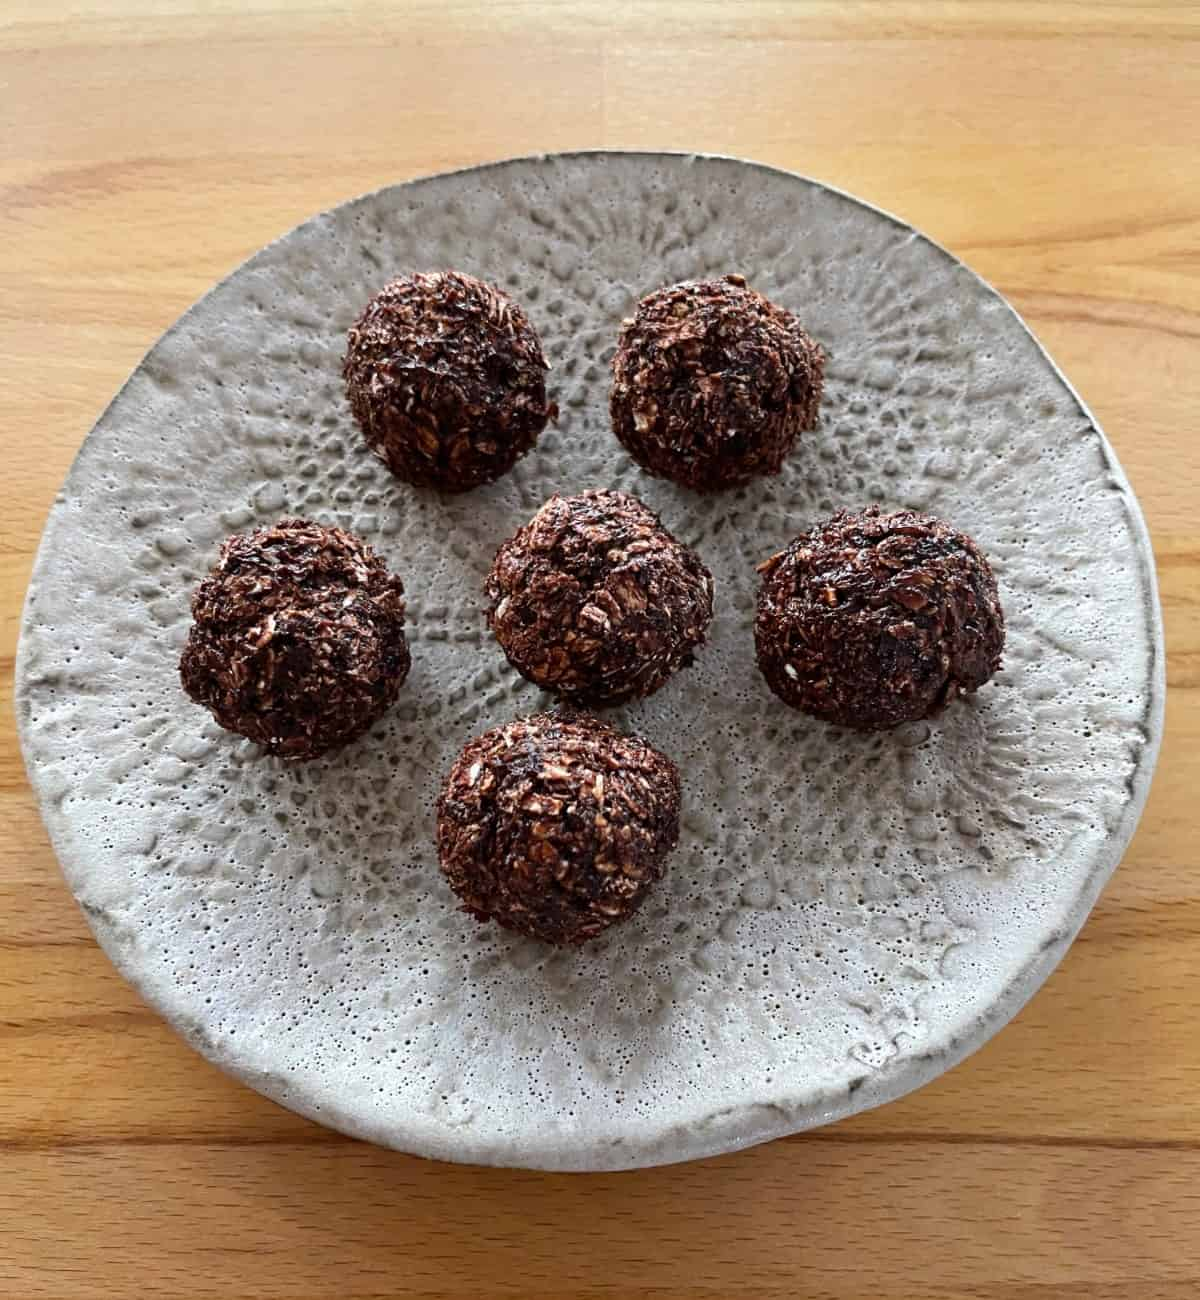 Rolled cranberry chocolate truffles on brown ceramic plate on wood table.